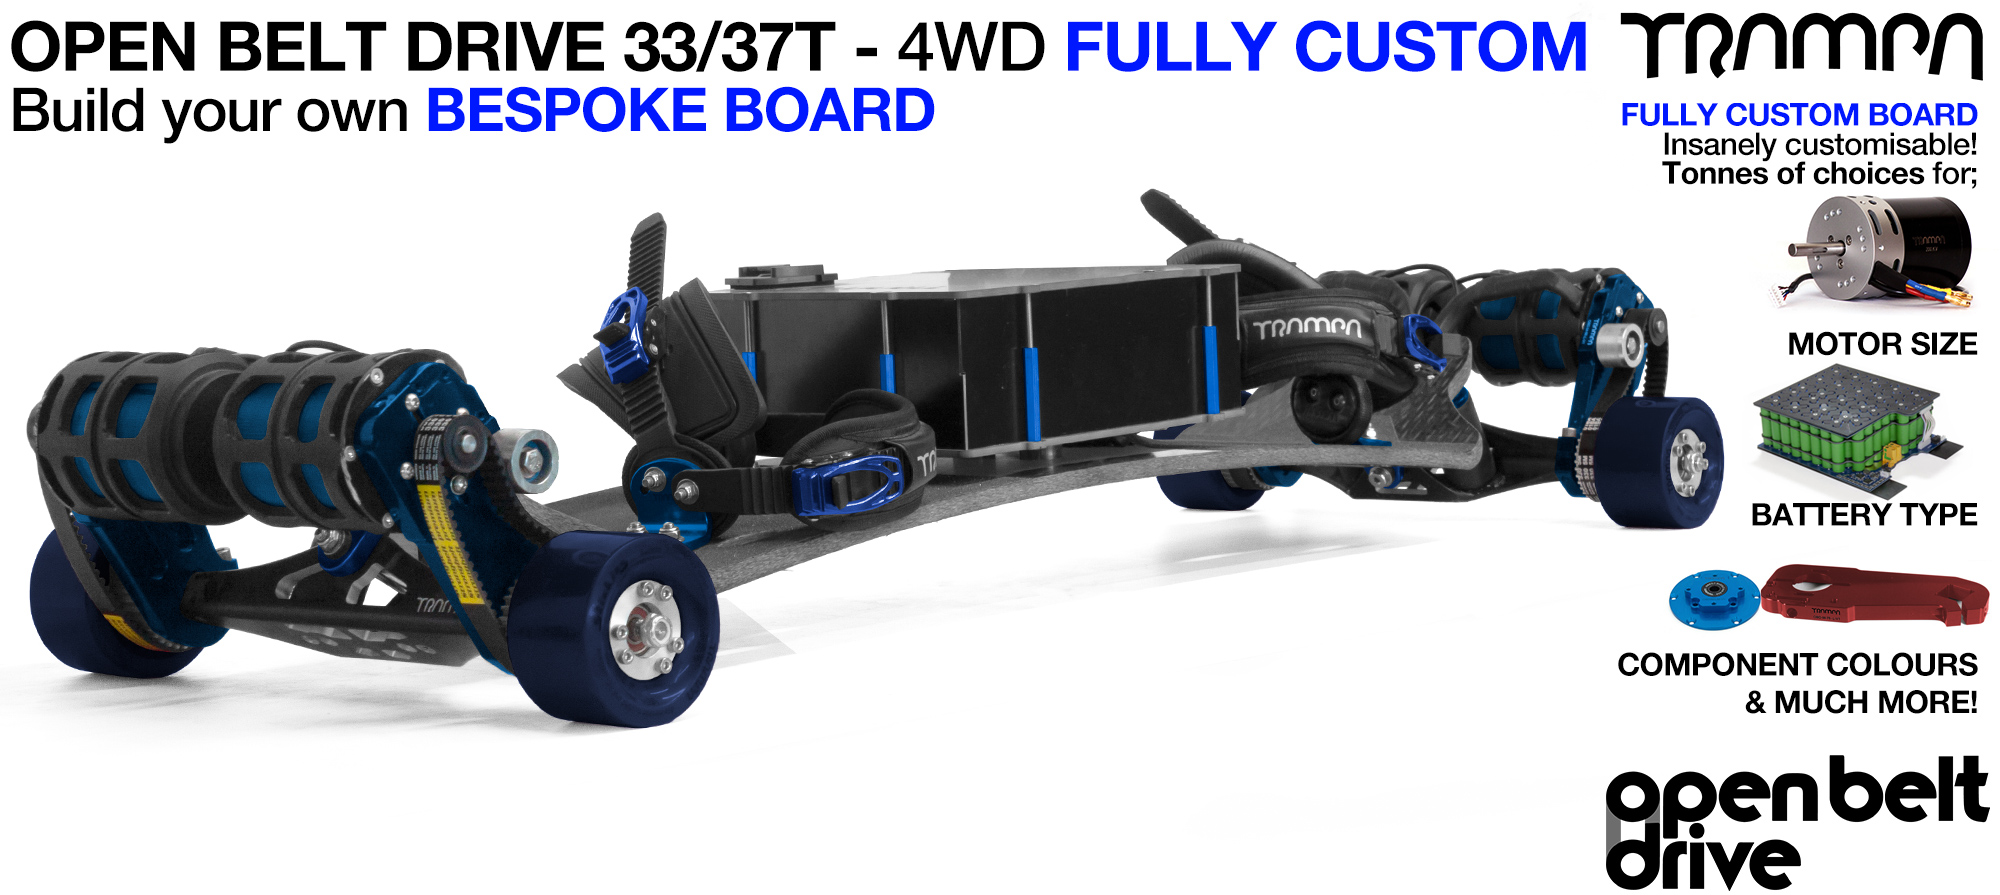 4WD 66T Open Belt Drive TRAMPA E-MTB with 83 or 90mm STICKIES Wheels & 33/37 Tooth Pulleys - CUSTOM